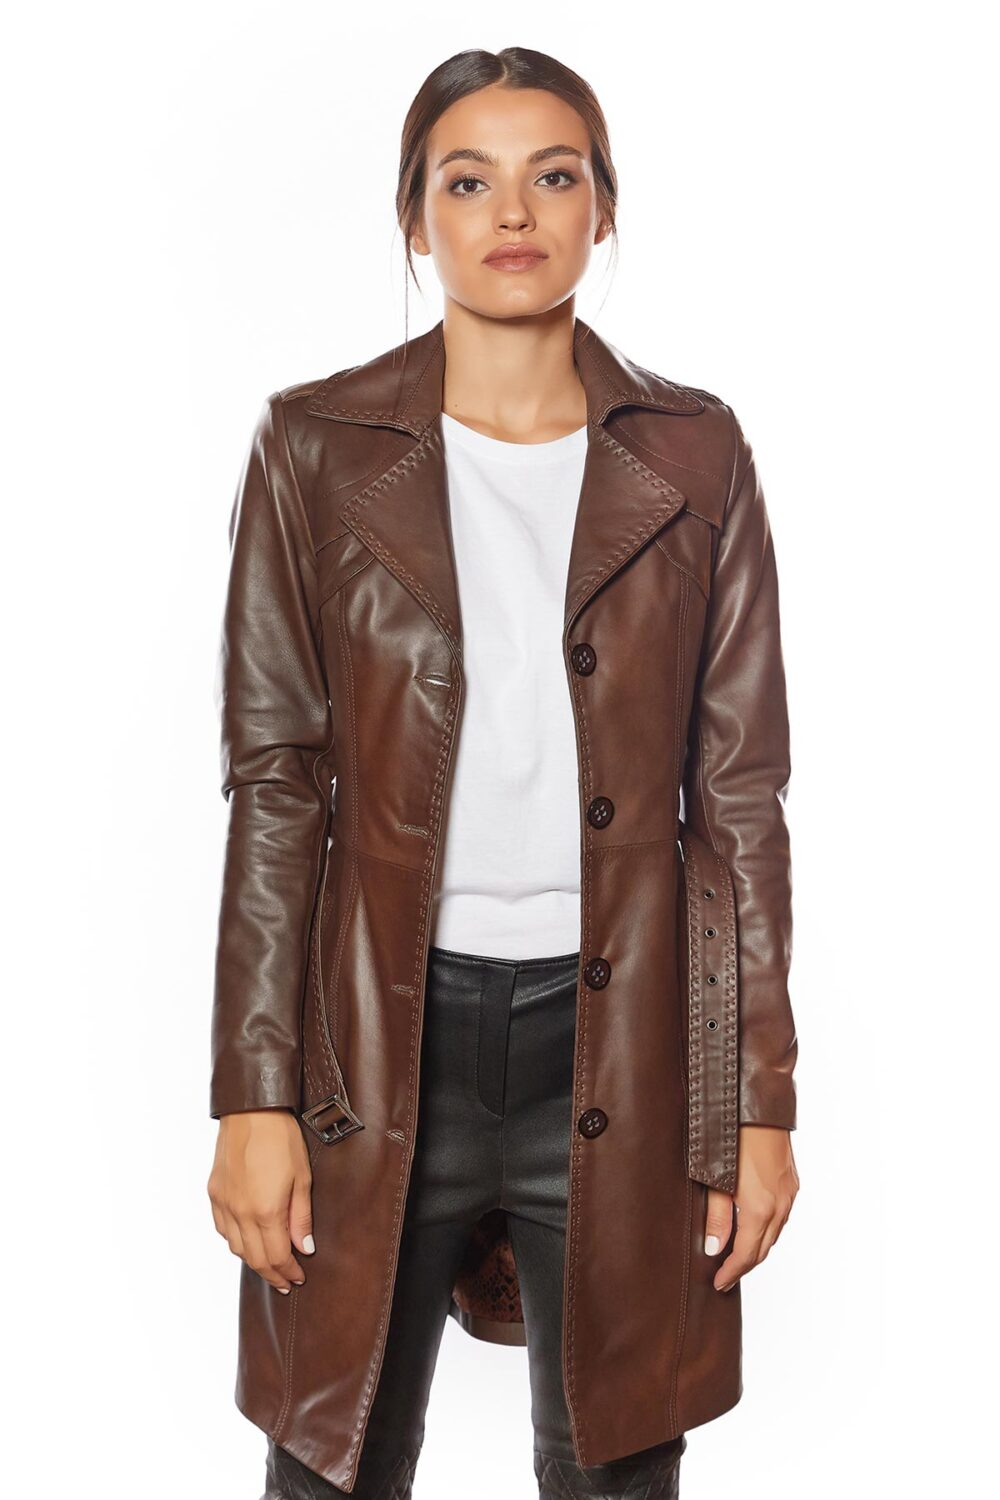 dark brown leather jacket outfit women's